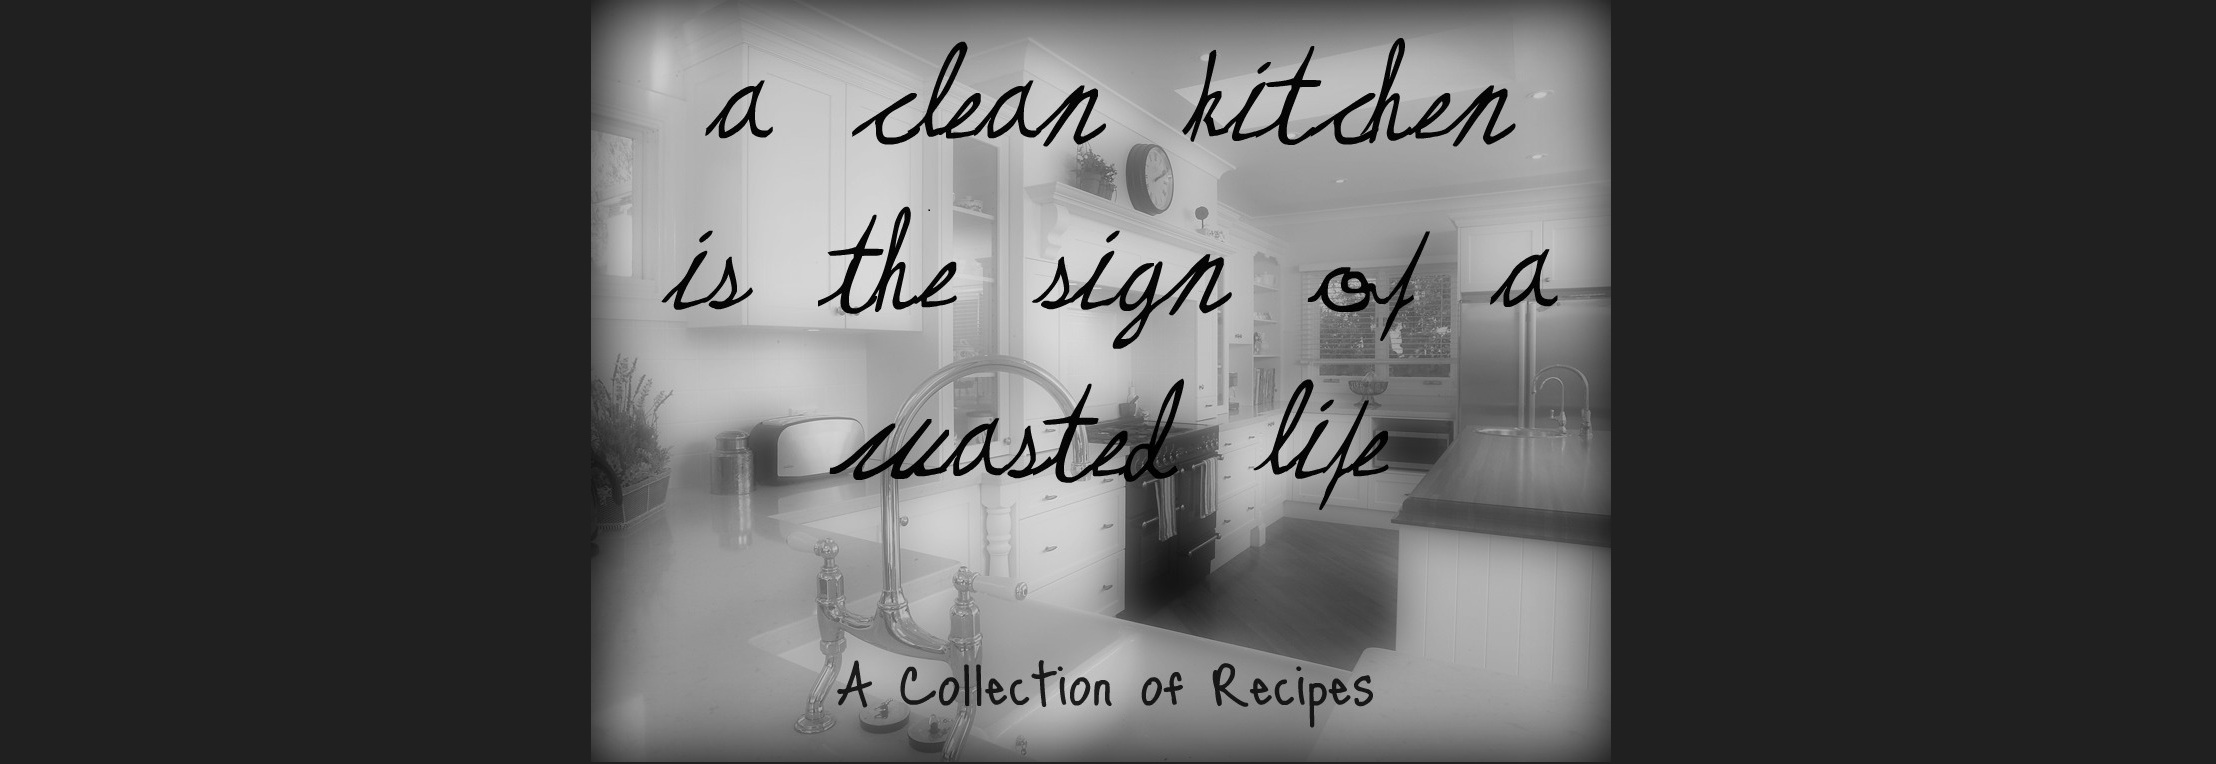 A Clean Kitchen is the Sign of a Wasted Life